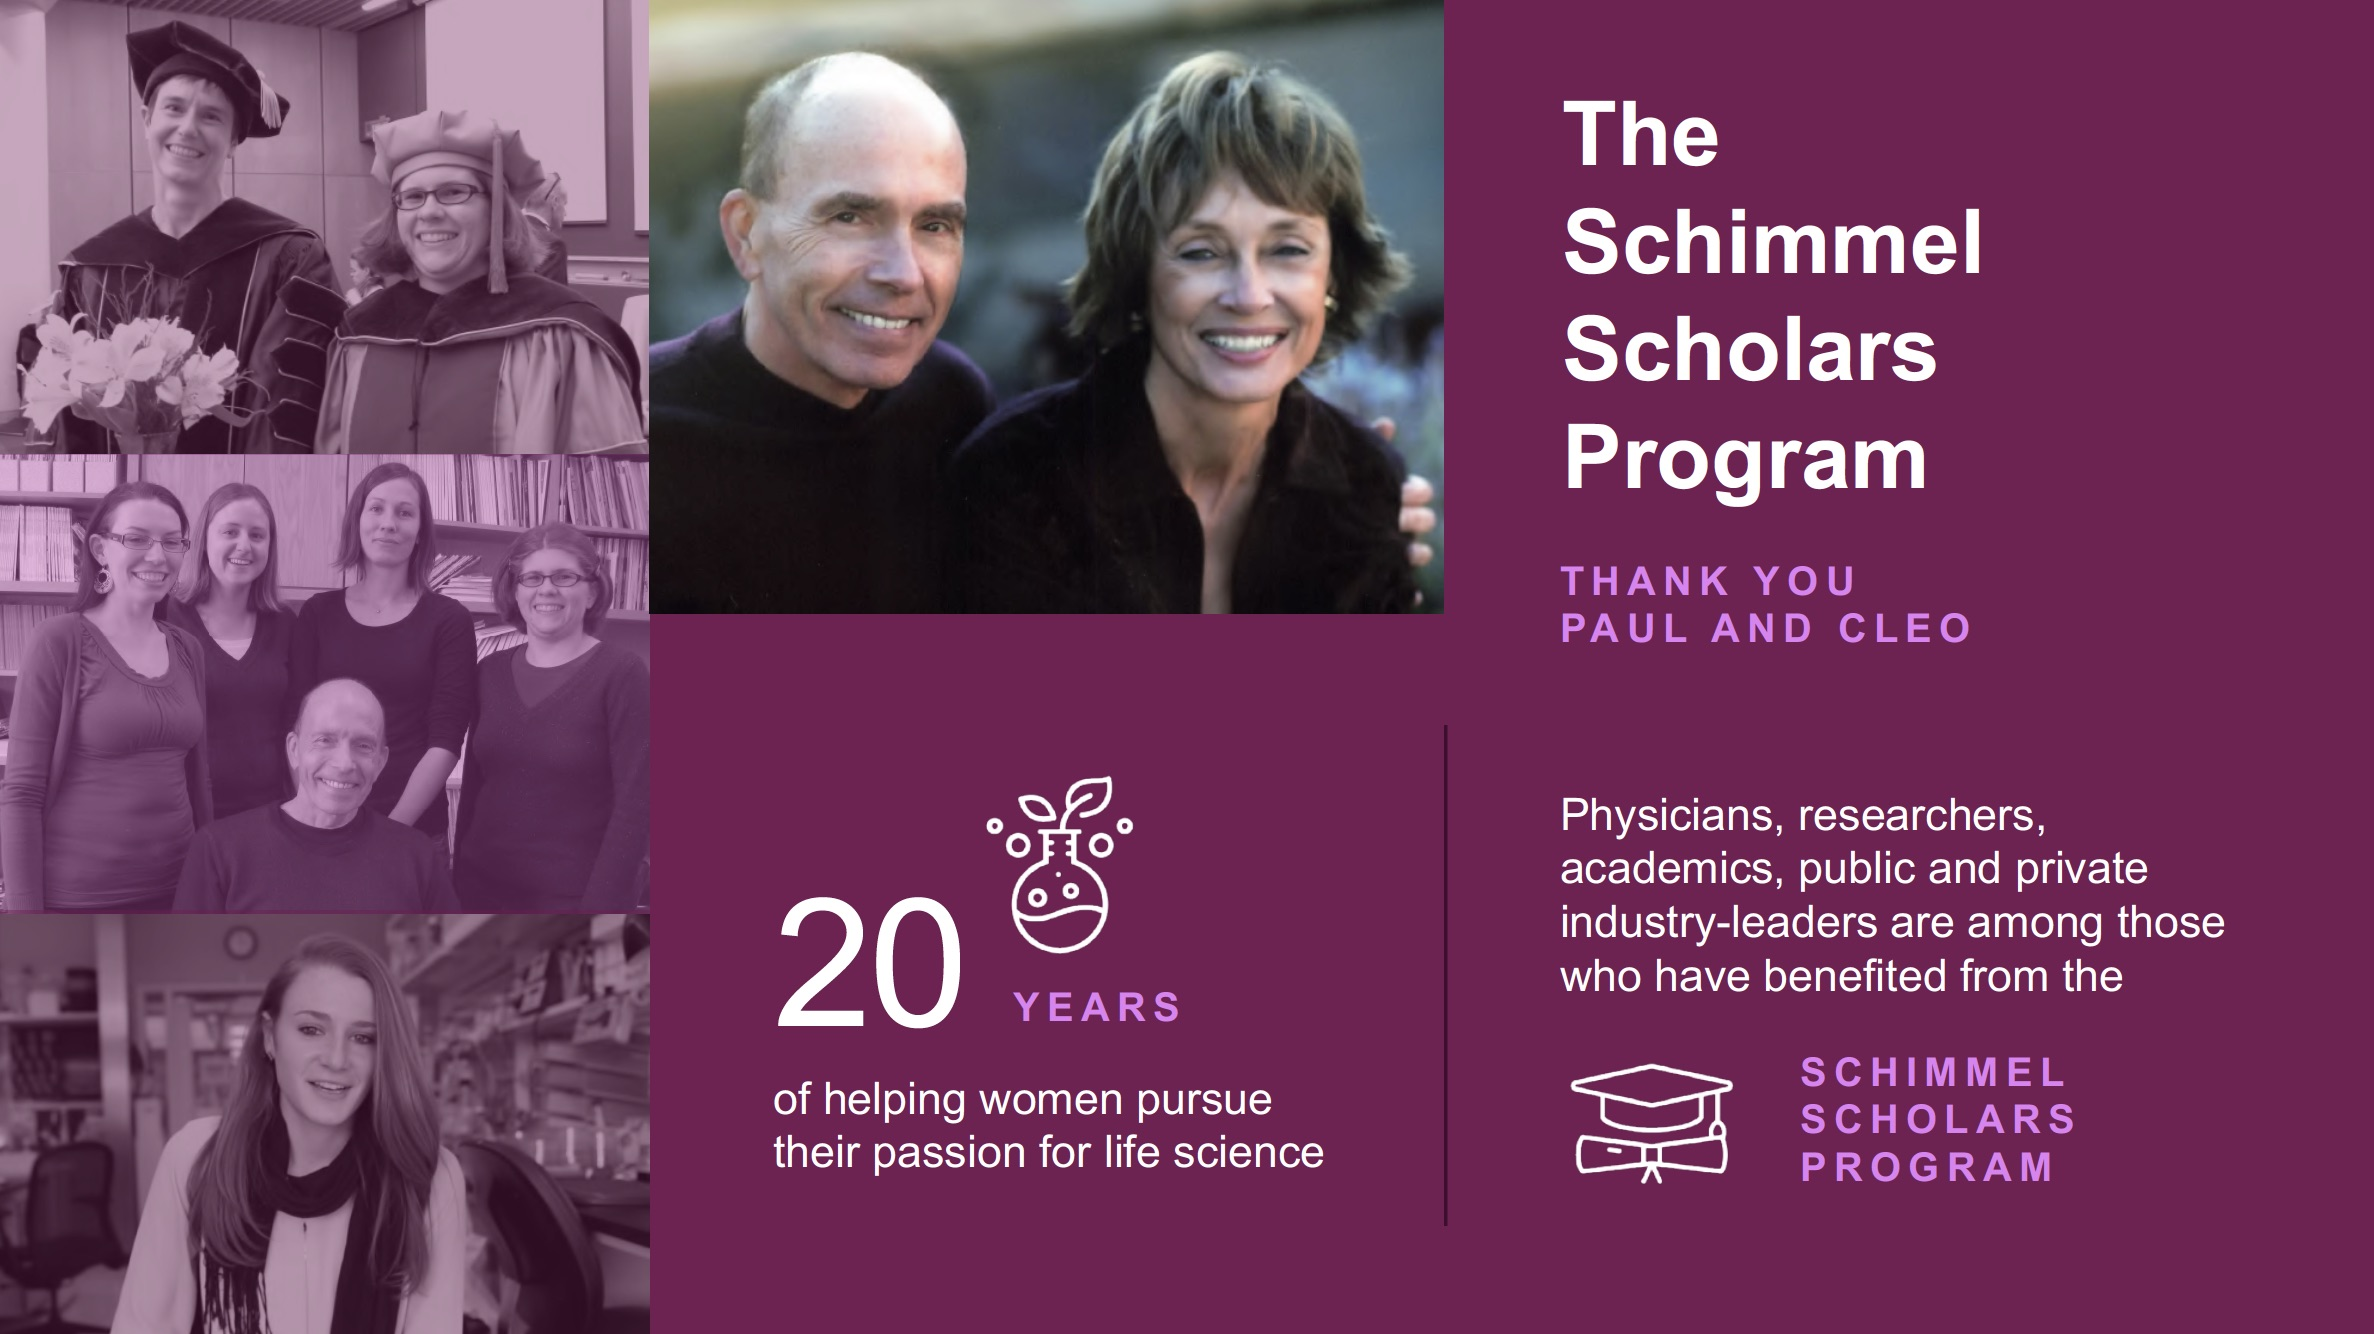 Paul Schimmel named ARCS San Diego Chapter 2020 Scientist of the Year